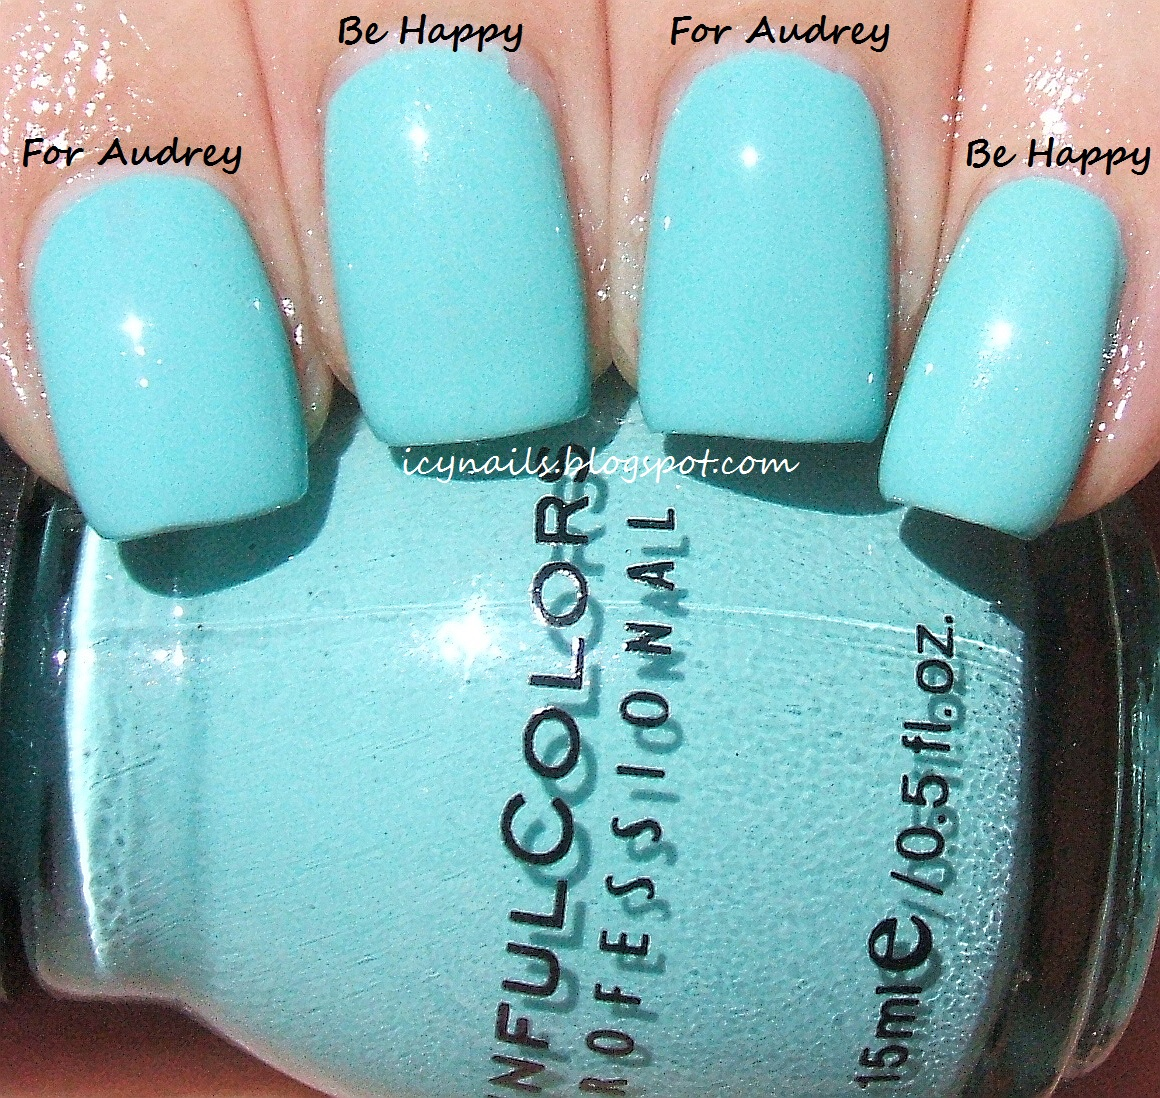 As You Can See From These Photographs China Glaze For Audrey And Sinful Colors Be Hy Are Extremely Close In Colour Tone But They Not Dupes